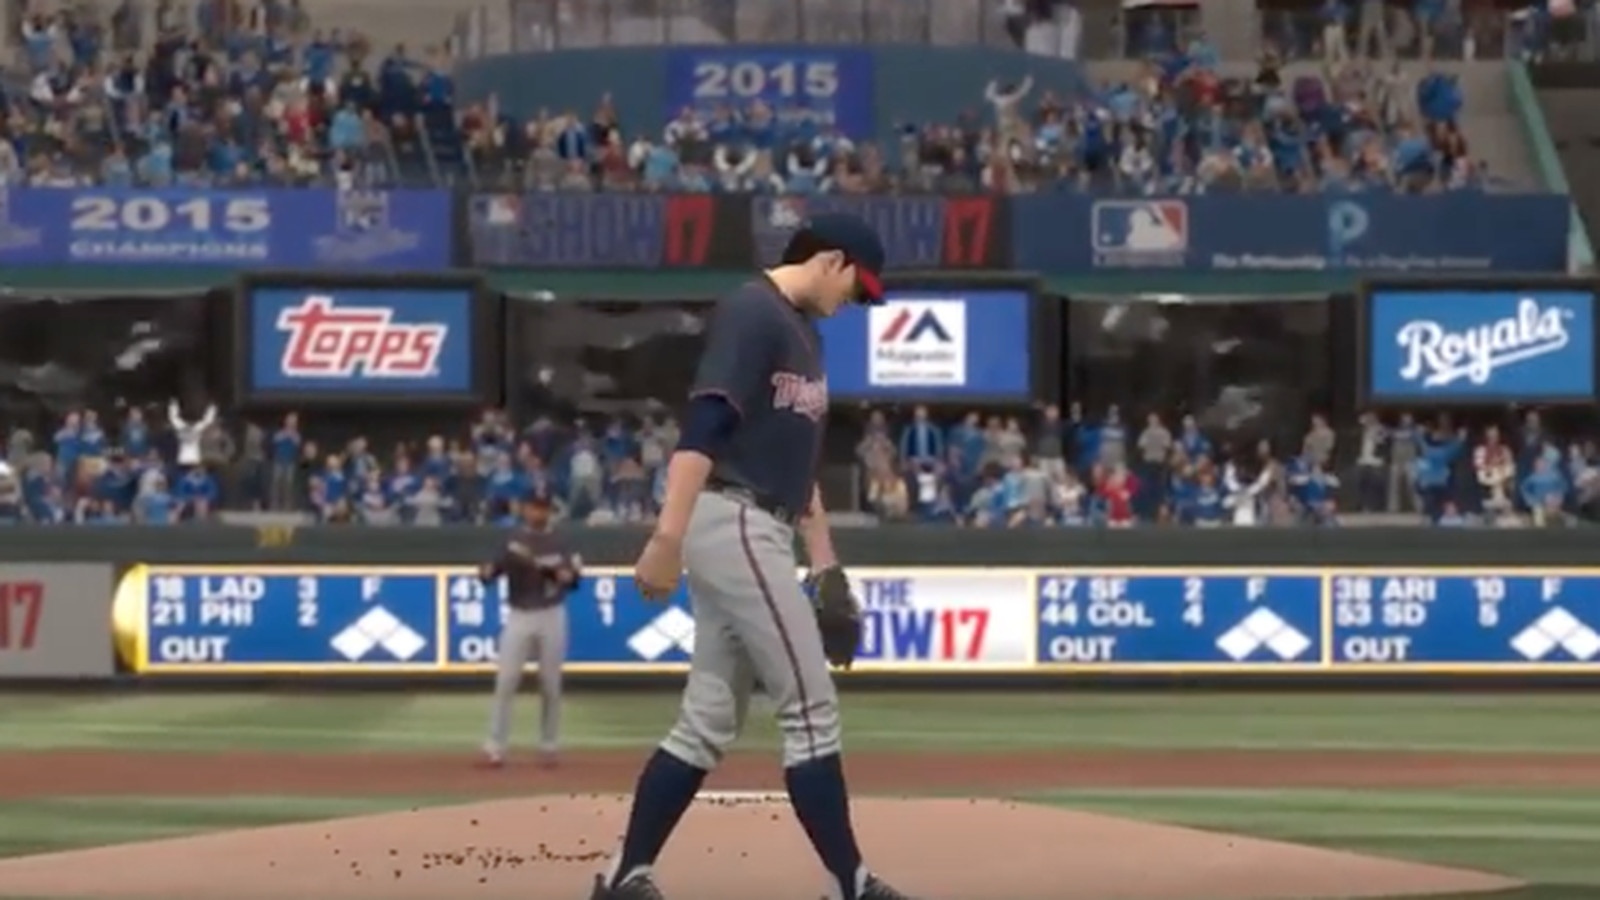 MLB The Show's 'ShowTime' mode makes an uncommon rule relevant